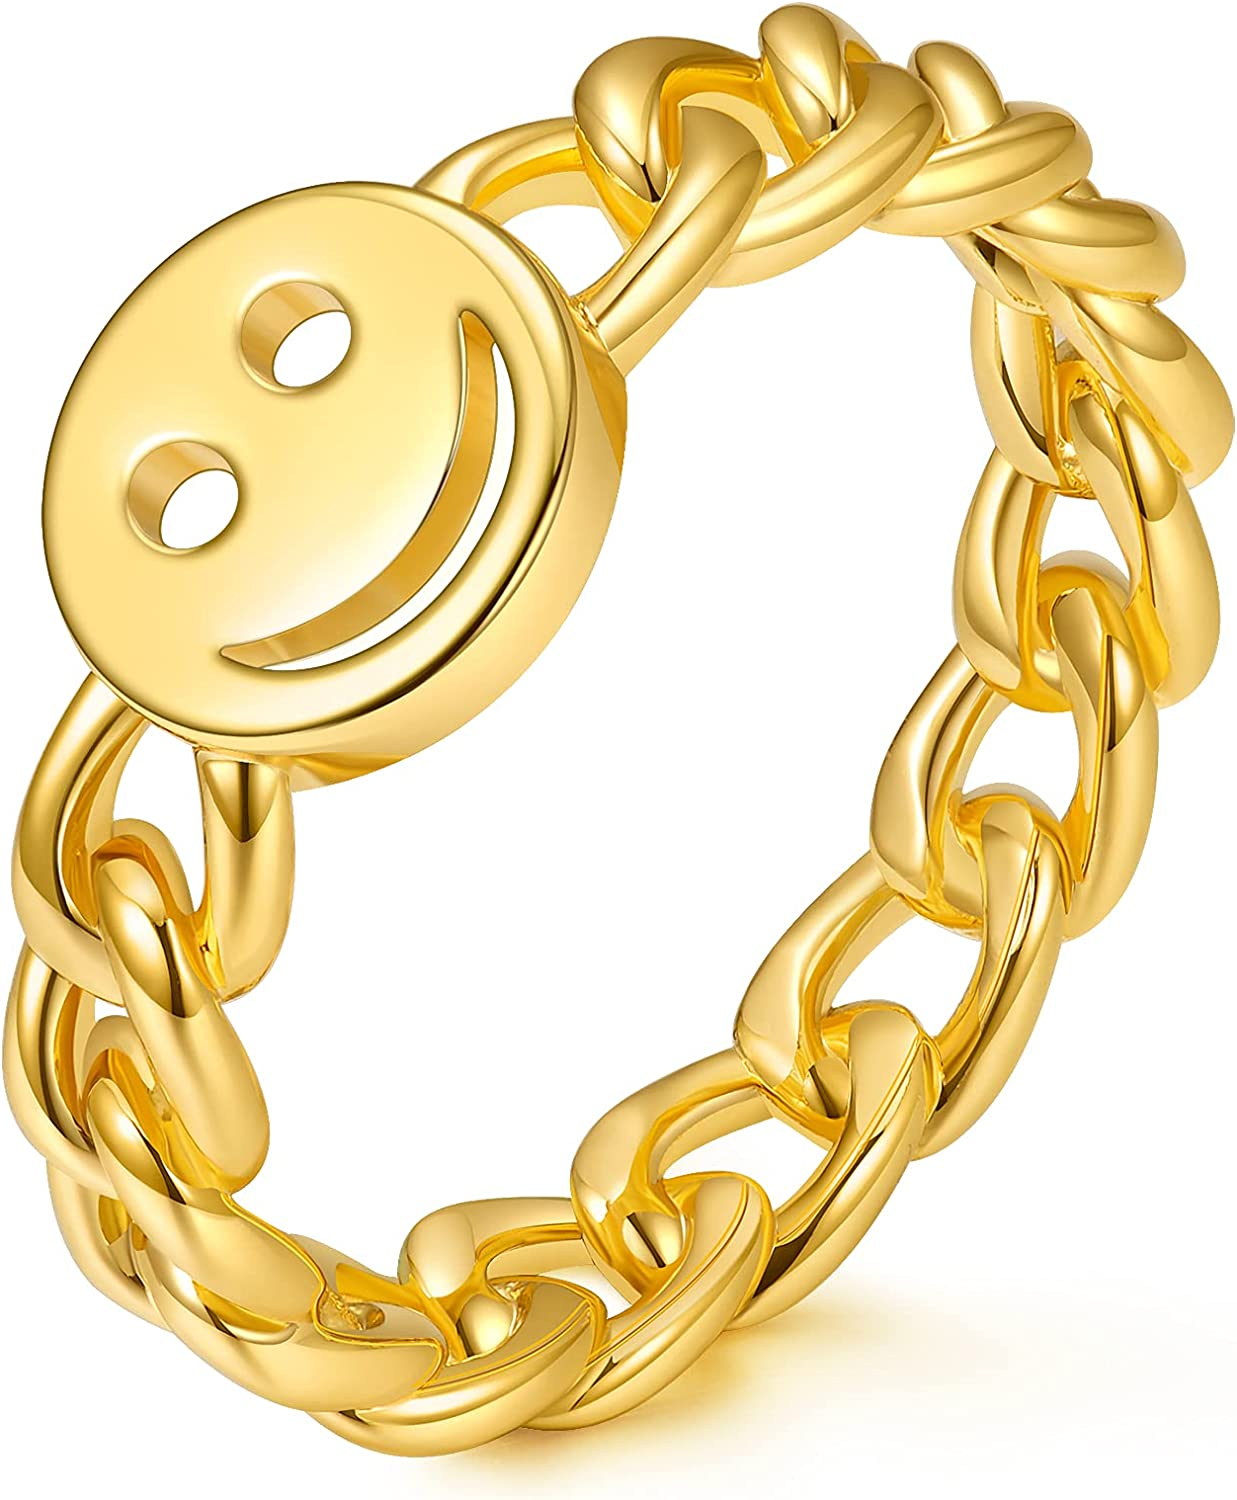 AllenCOCO 18K Gold Plated Smiley Face Ring with Chain Link Happy Face Ring Stackable Rings for Women